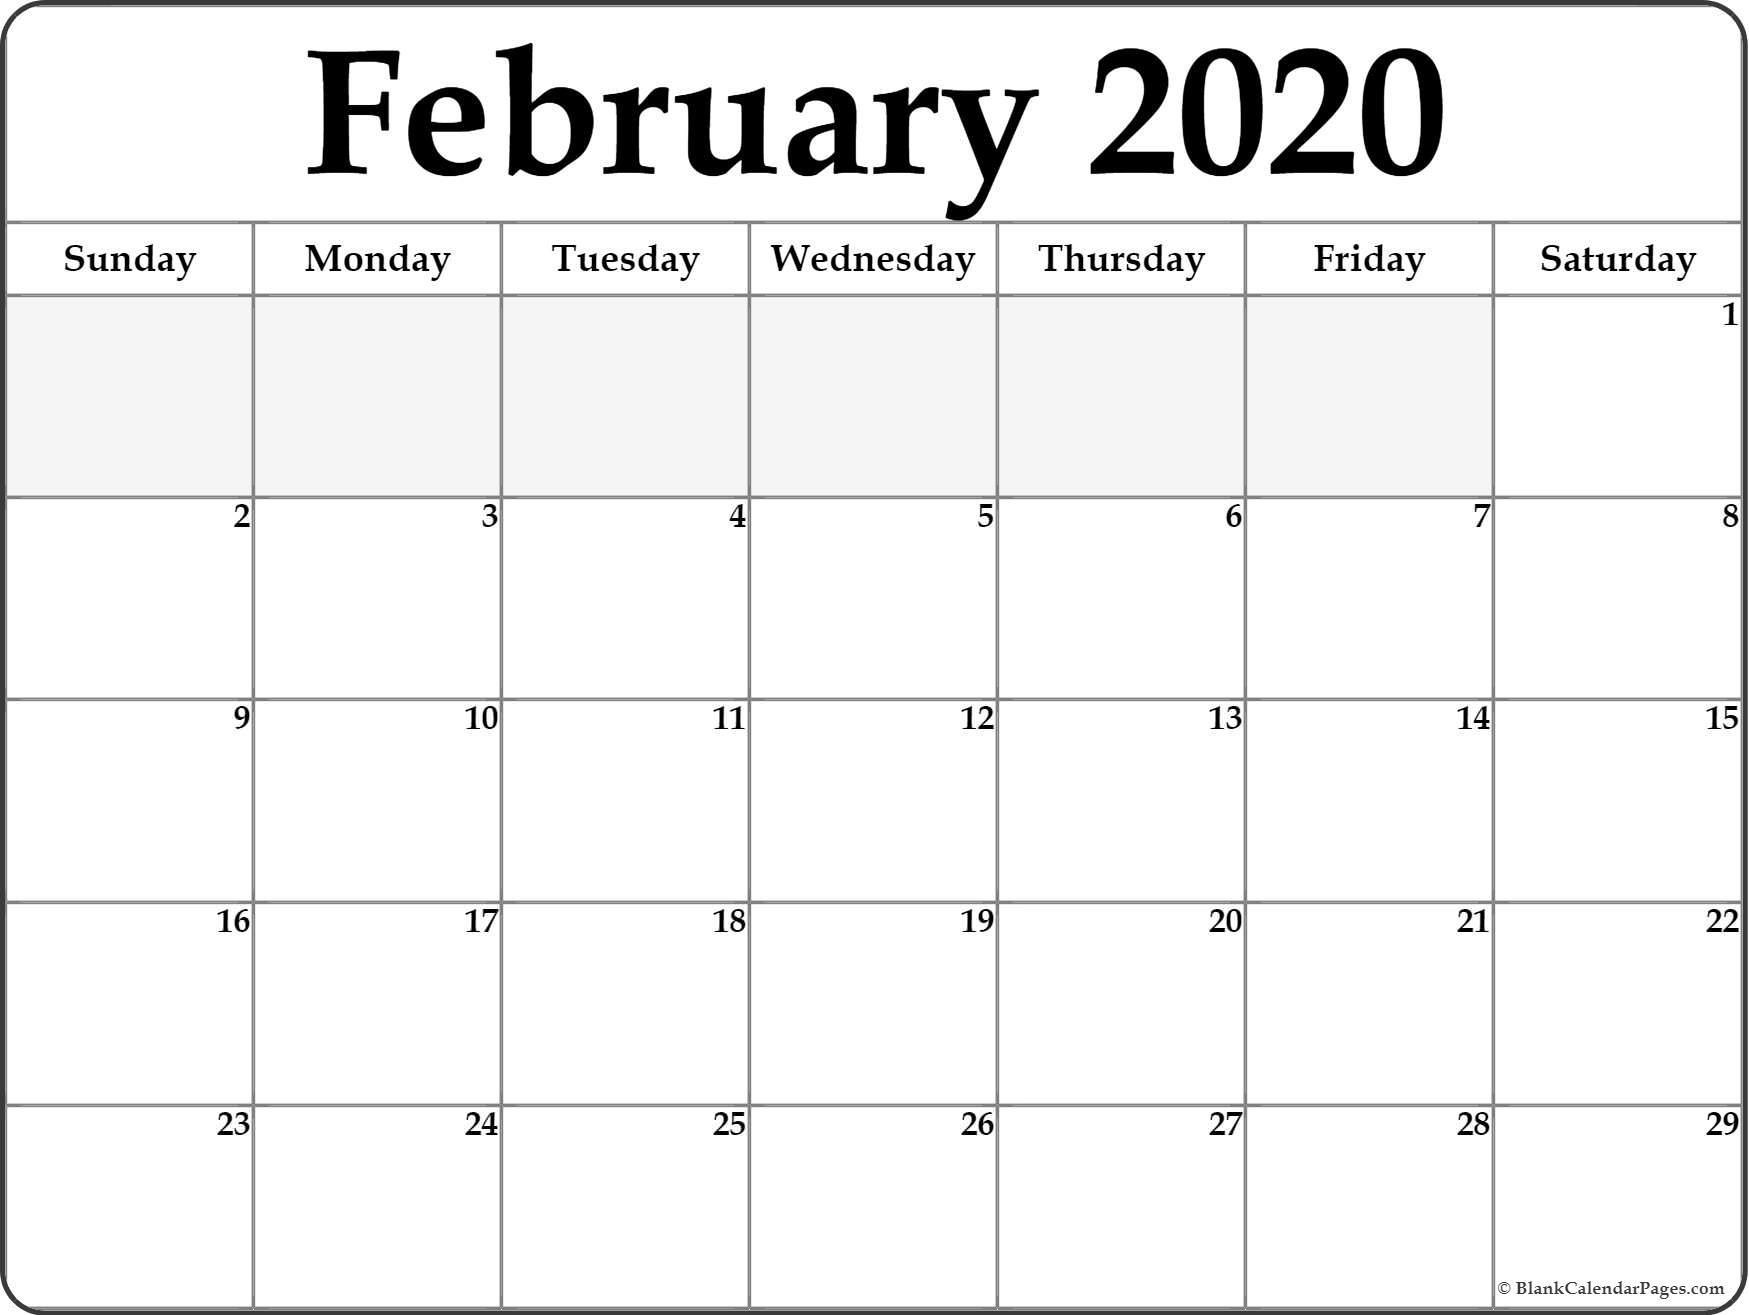 February 2020 Calendar | Free Printable Monthly Calendars within Free Printable Calander 2020 Victoria Wiht Spaces To Write